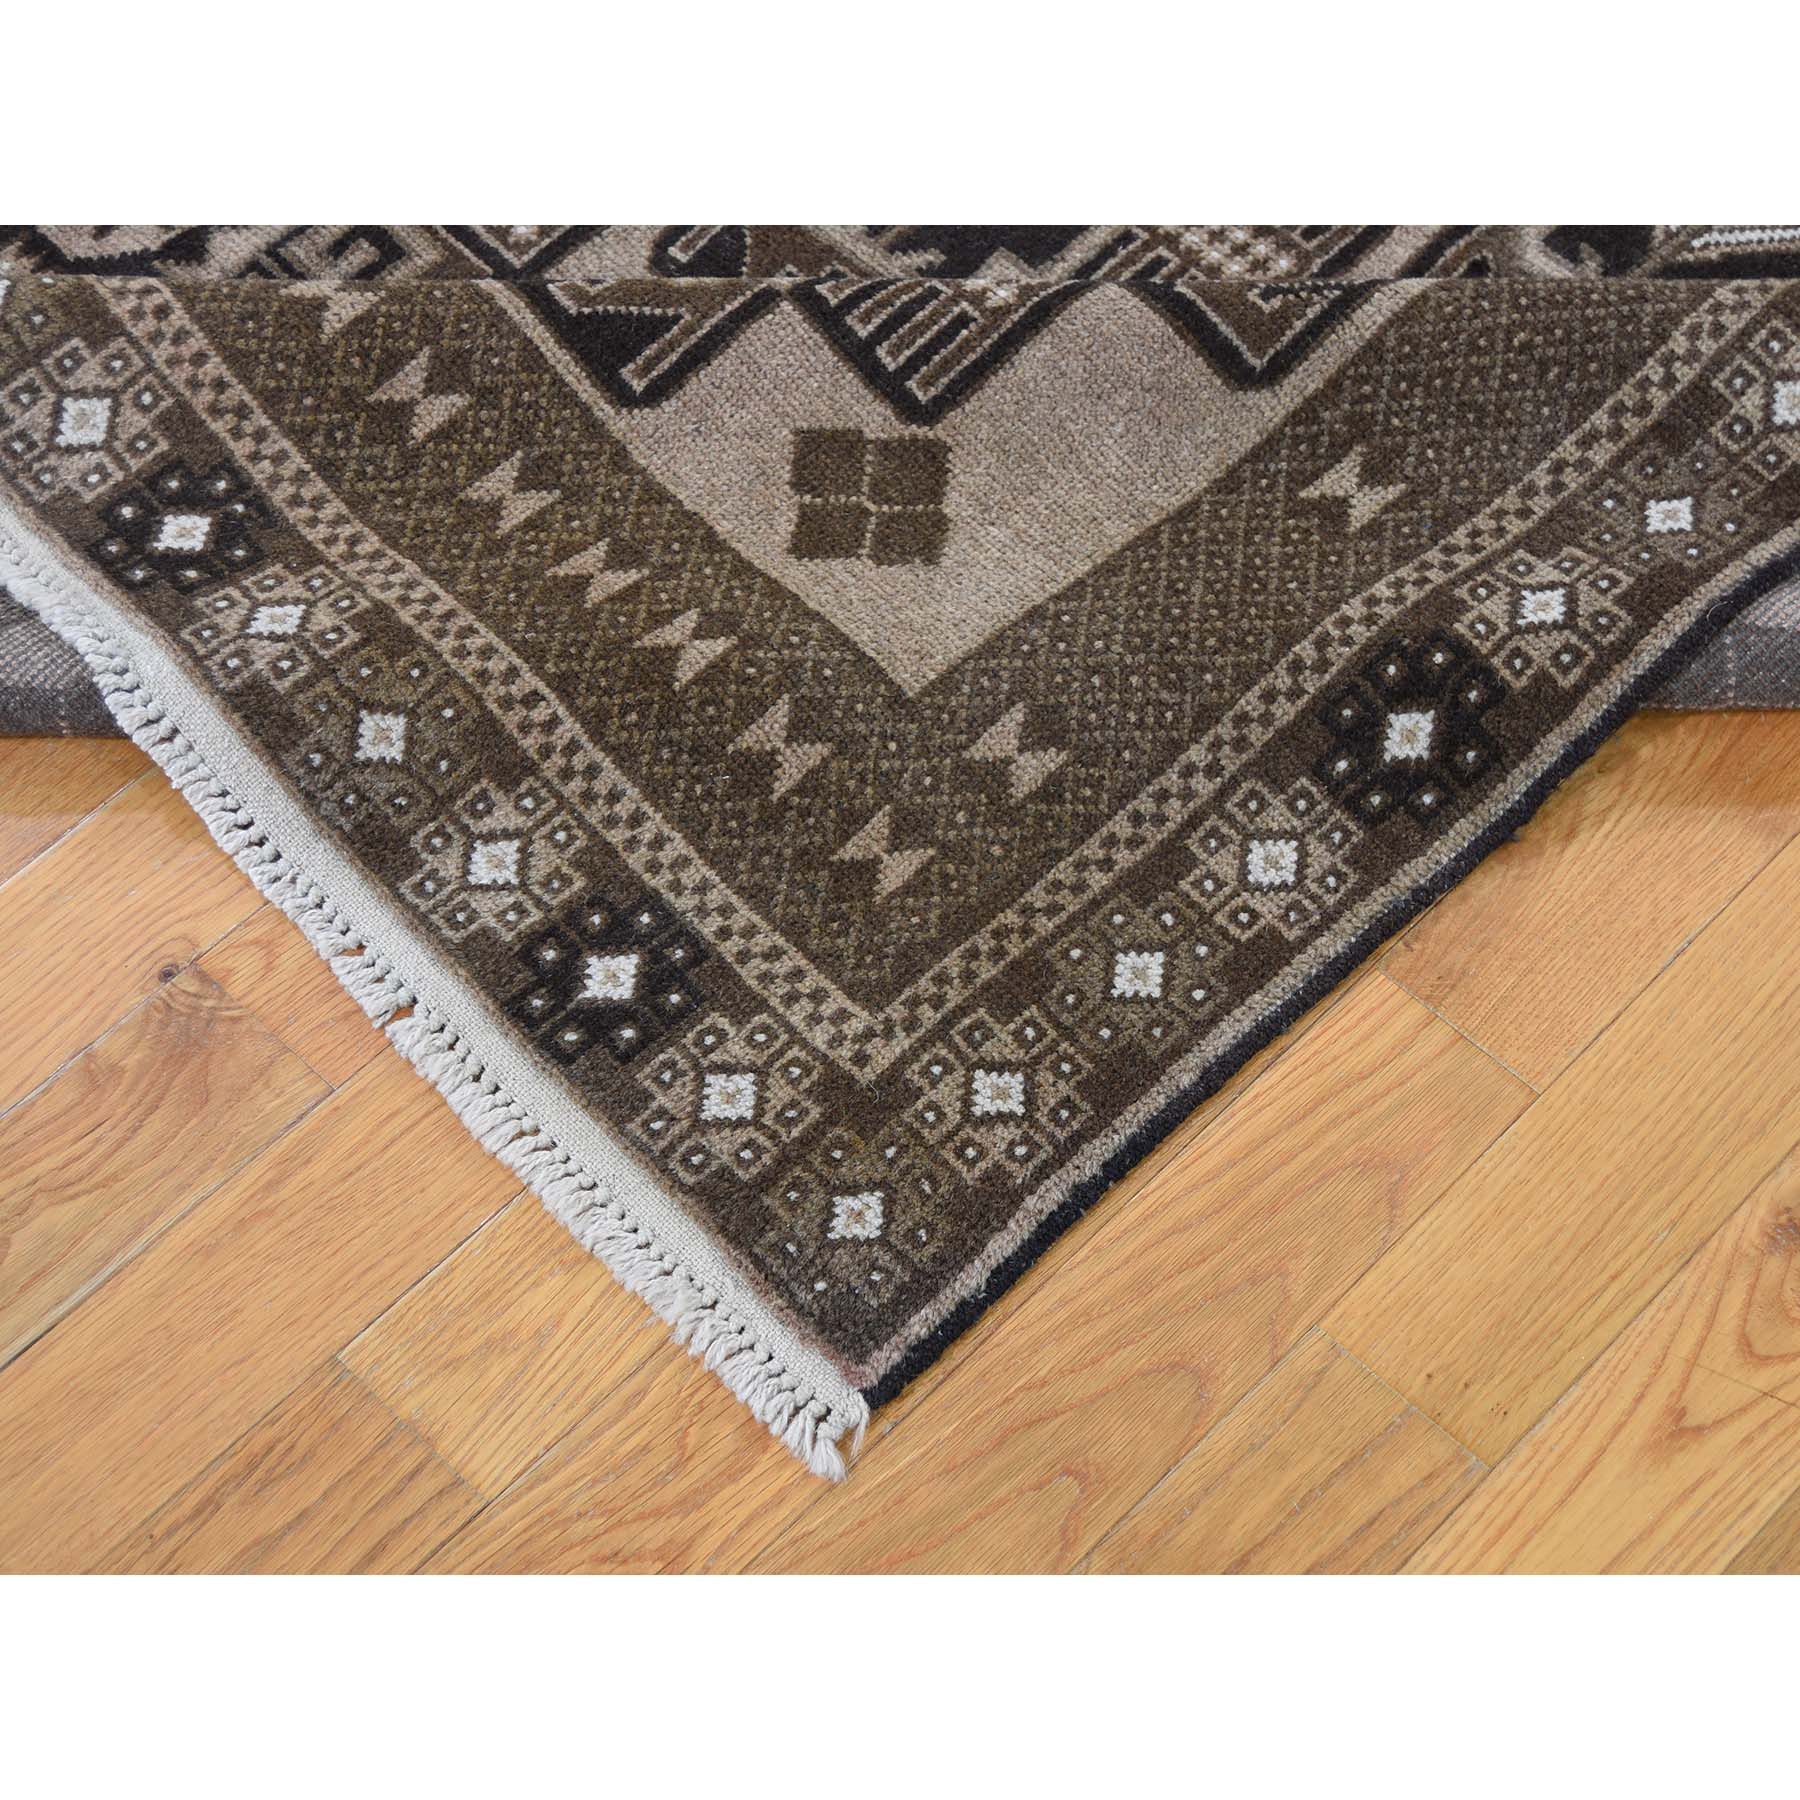 6-7 x8-10  Vintage Afghan Baluch Natural Color Hand-Knotted Pure Wool Oriental Rug